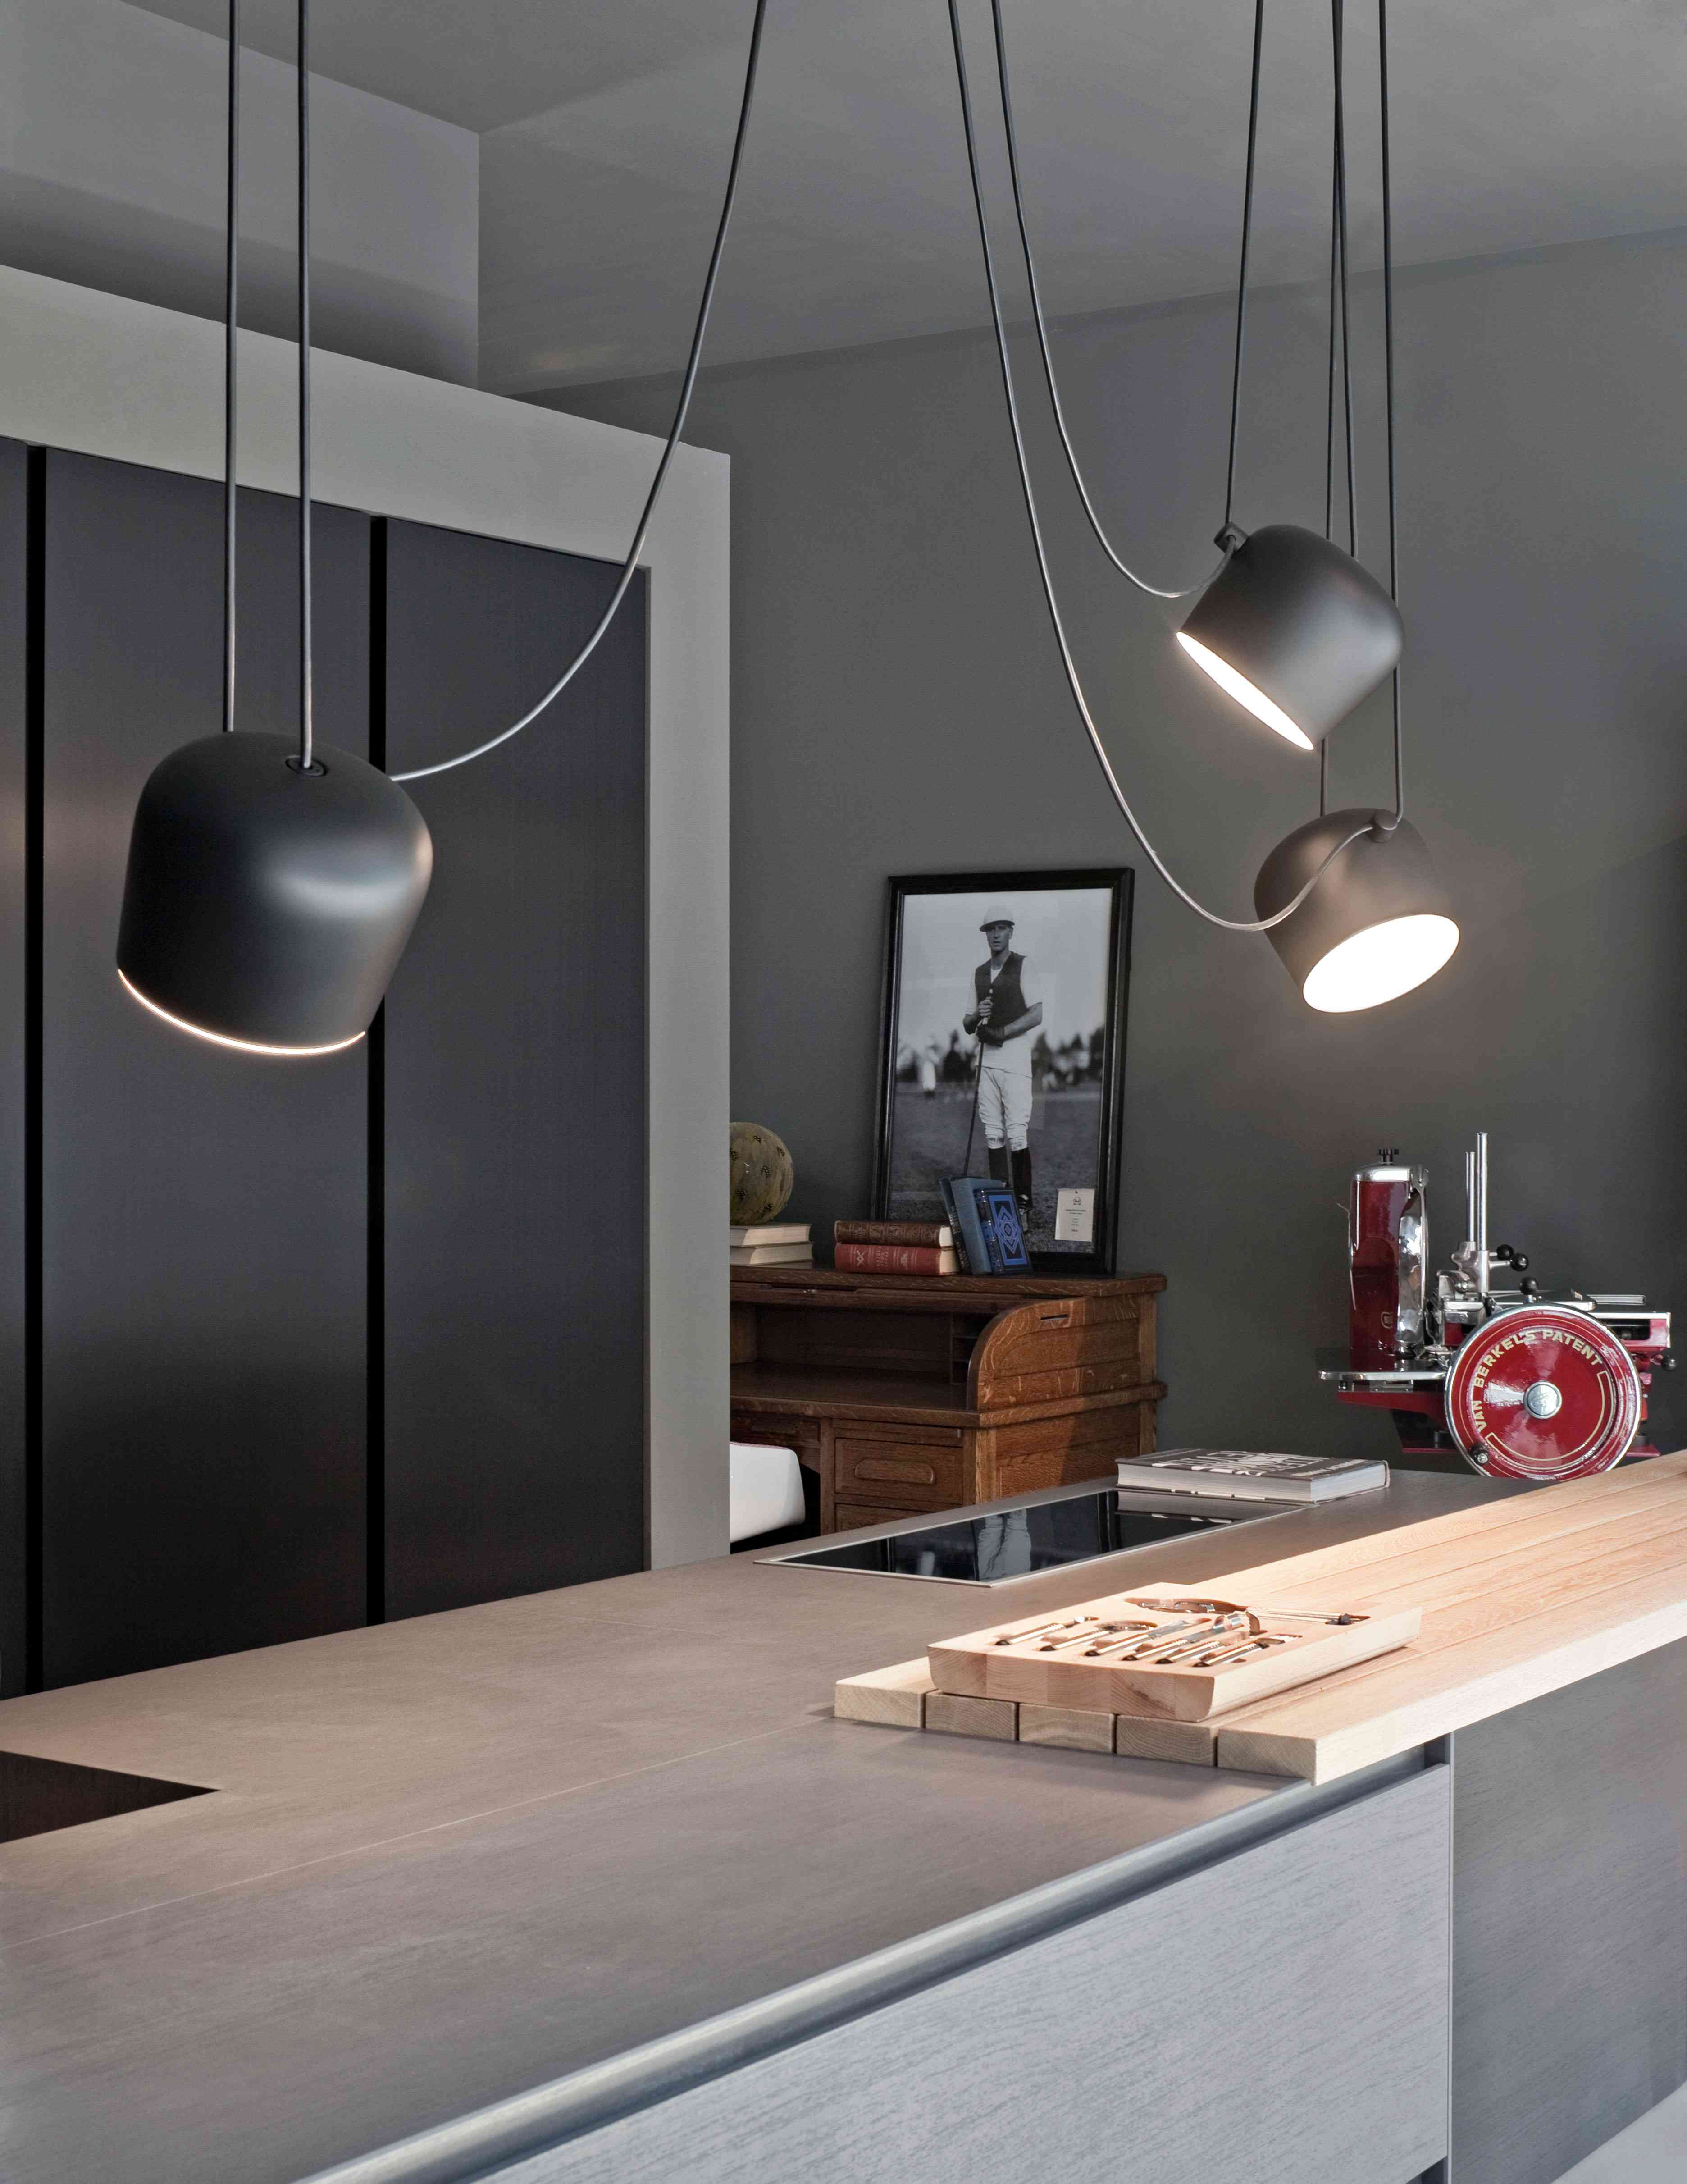 Aim Kitchen Hanging Lights